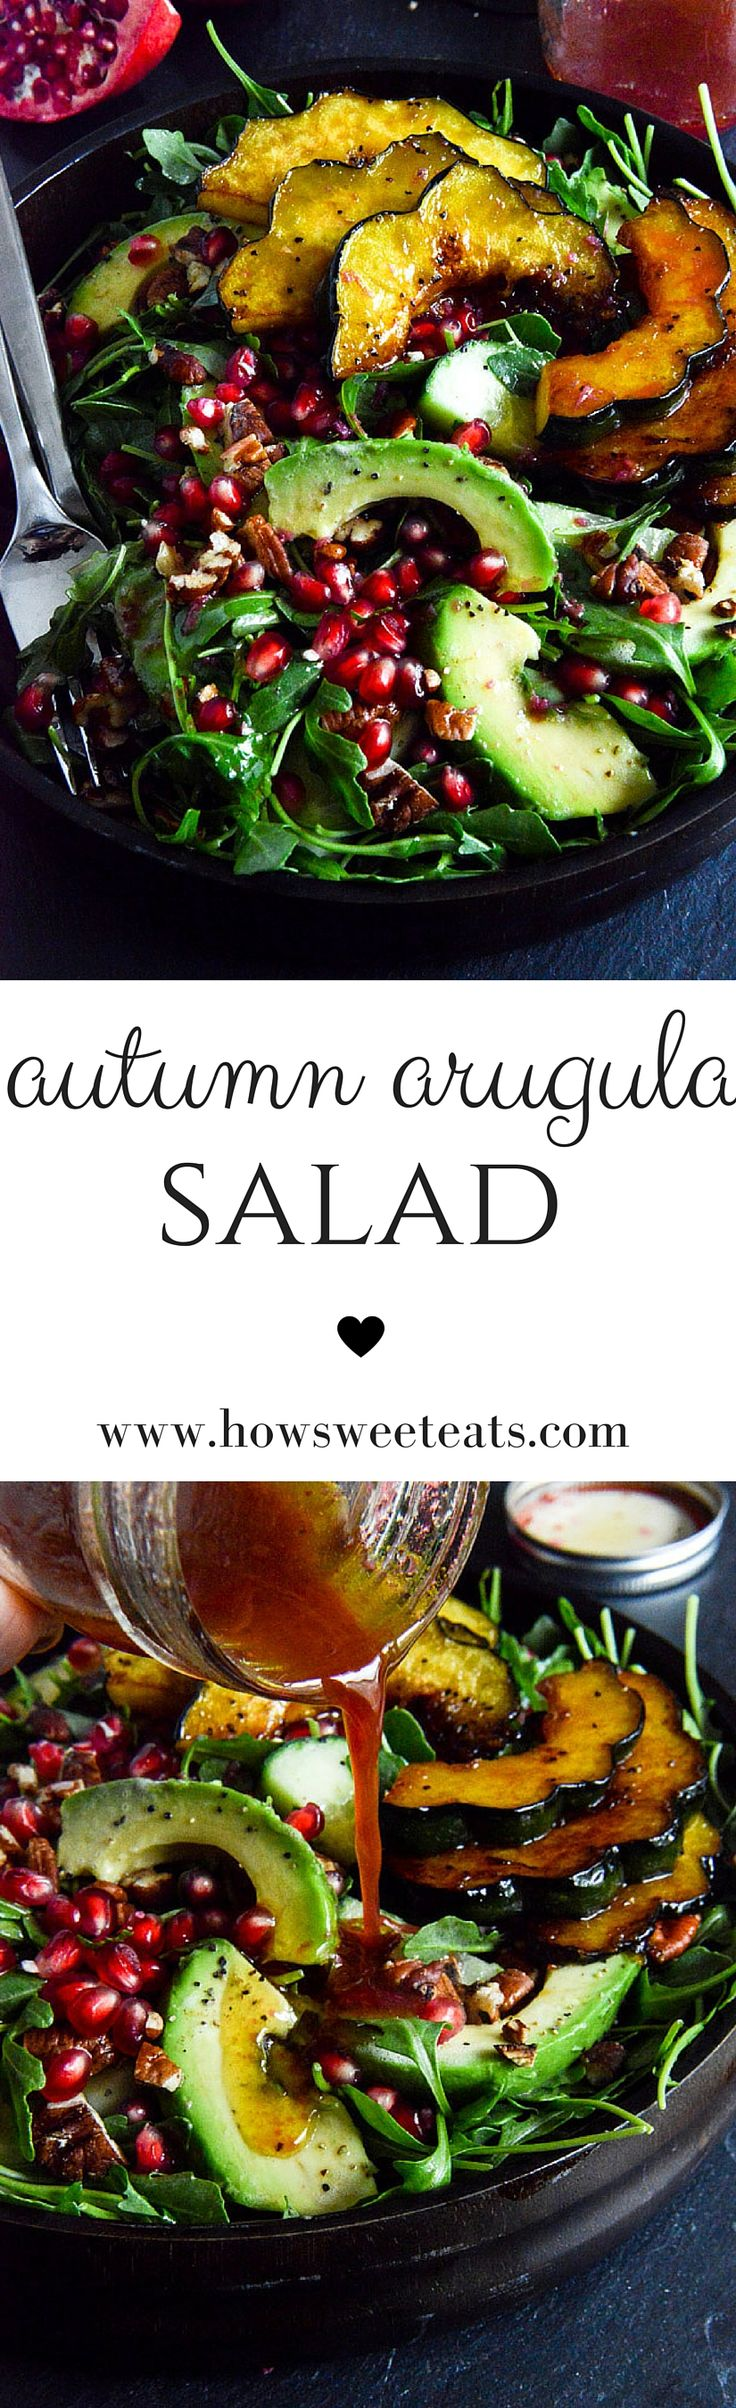 Autumn Arugula Salad with Caramelized Squash, Spiced Pecans and Pomegranate…